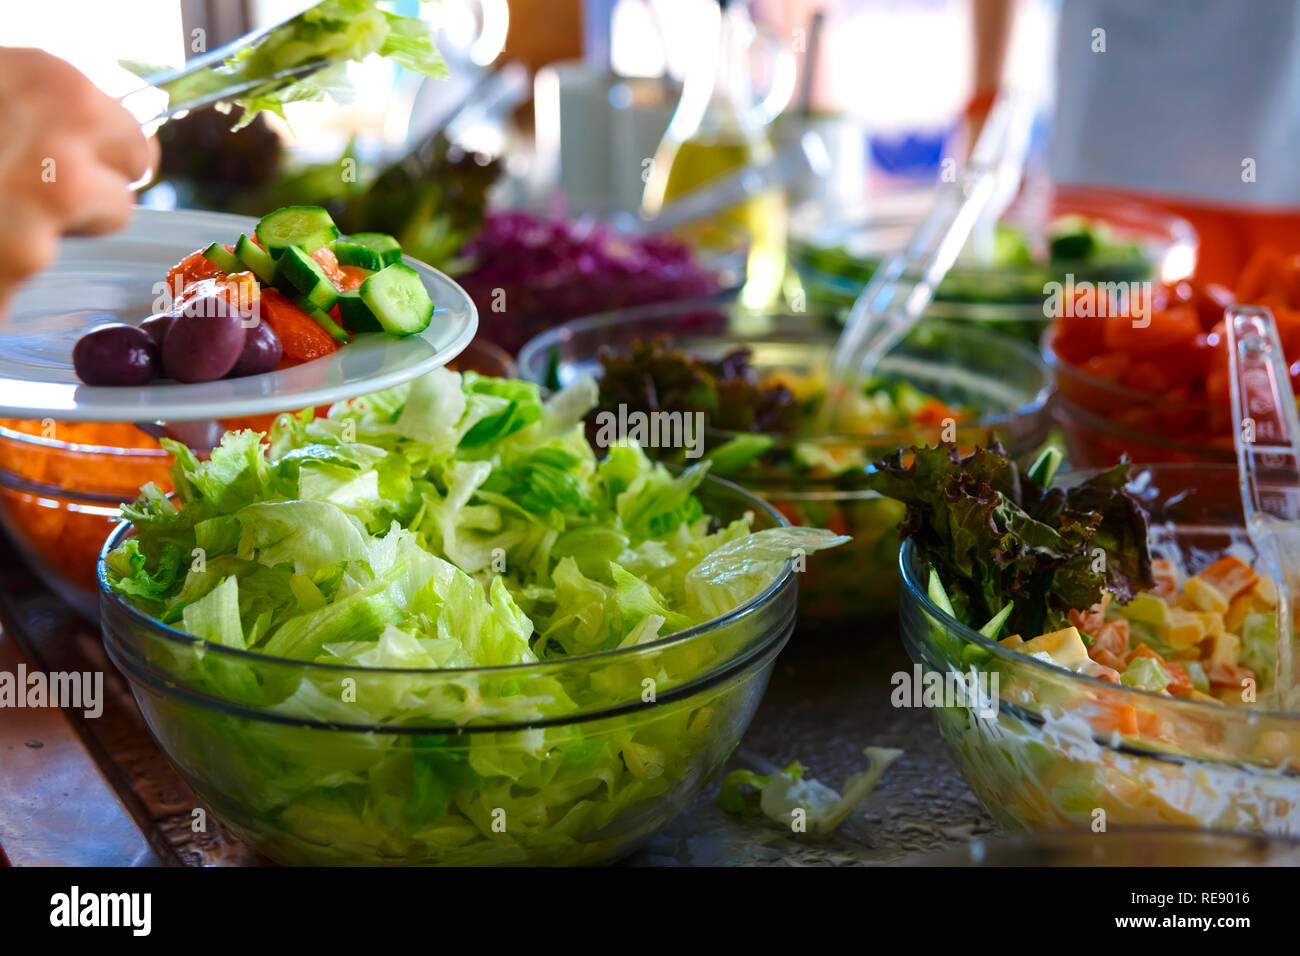 Salad buffet. The people themselves impose the desired treat. - Stock Image